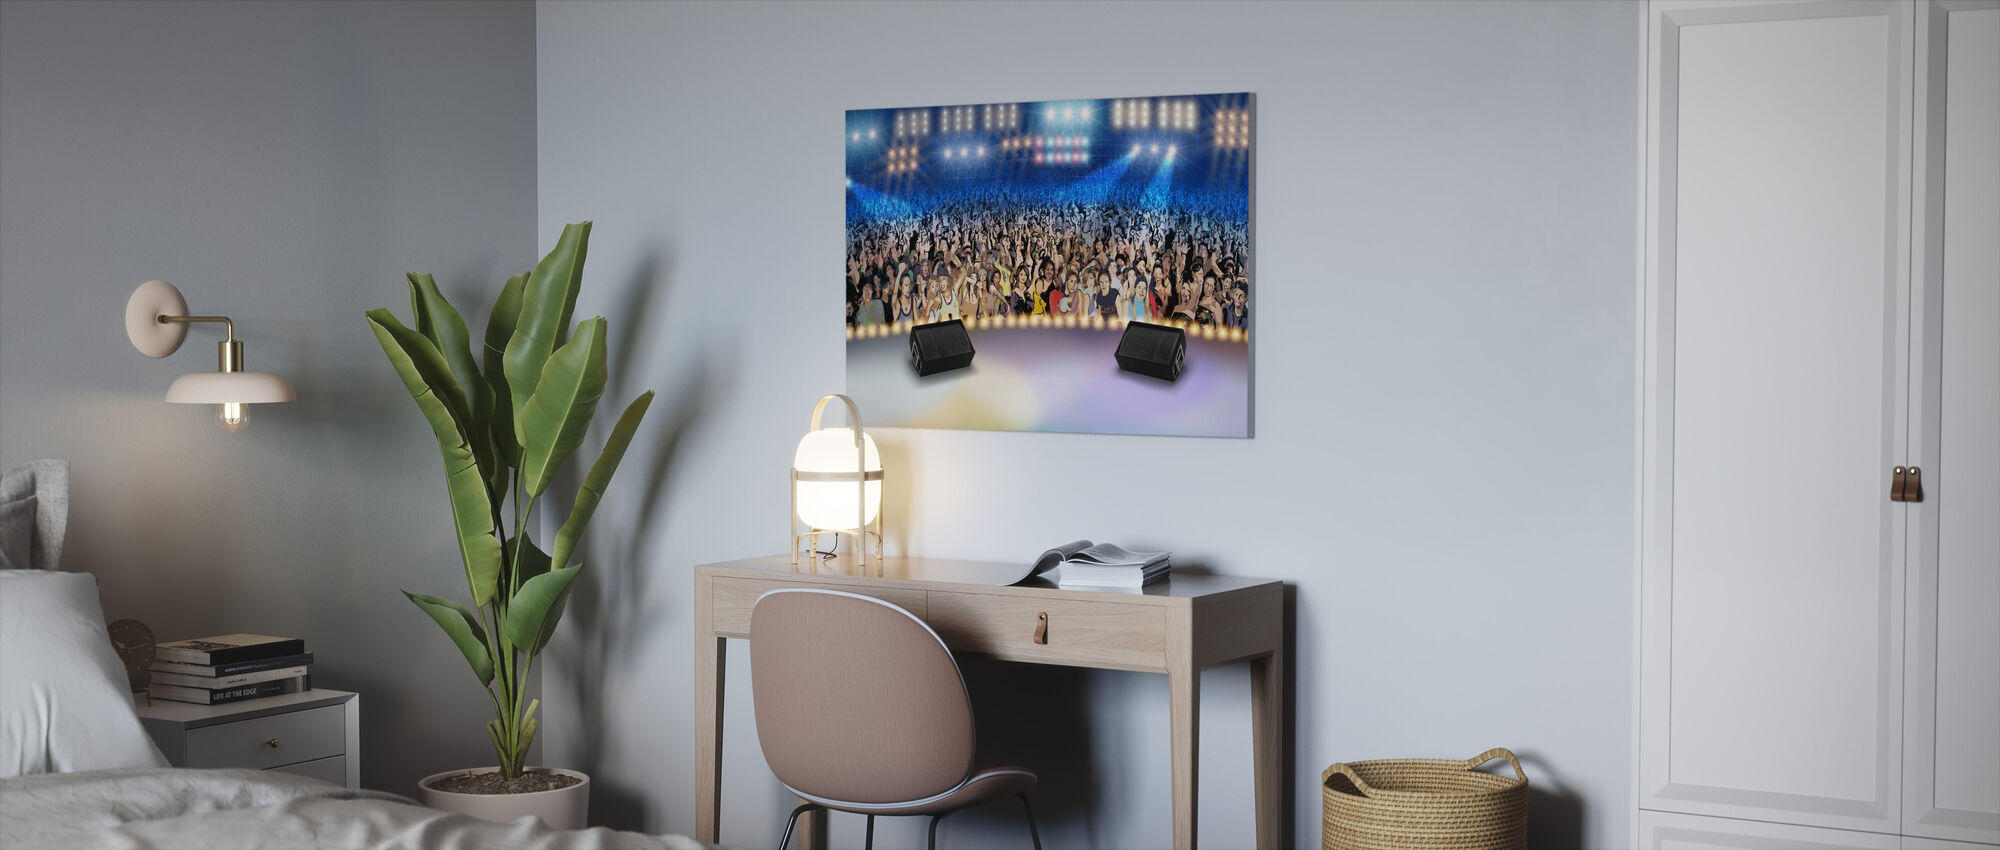 On Stage - Canvas print - Office